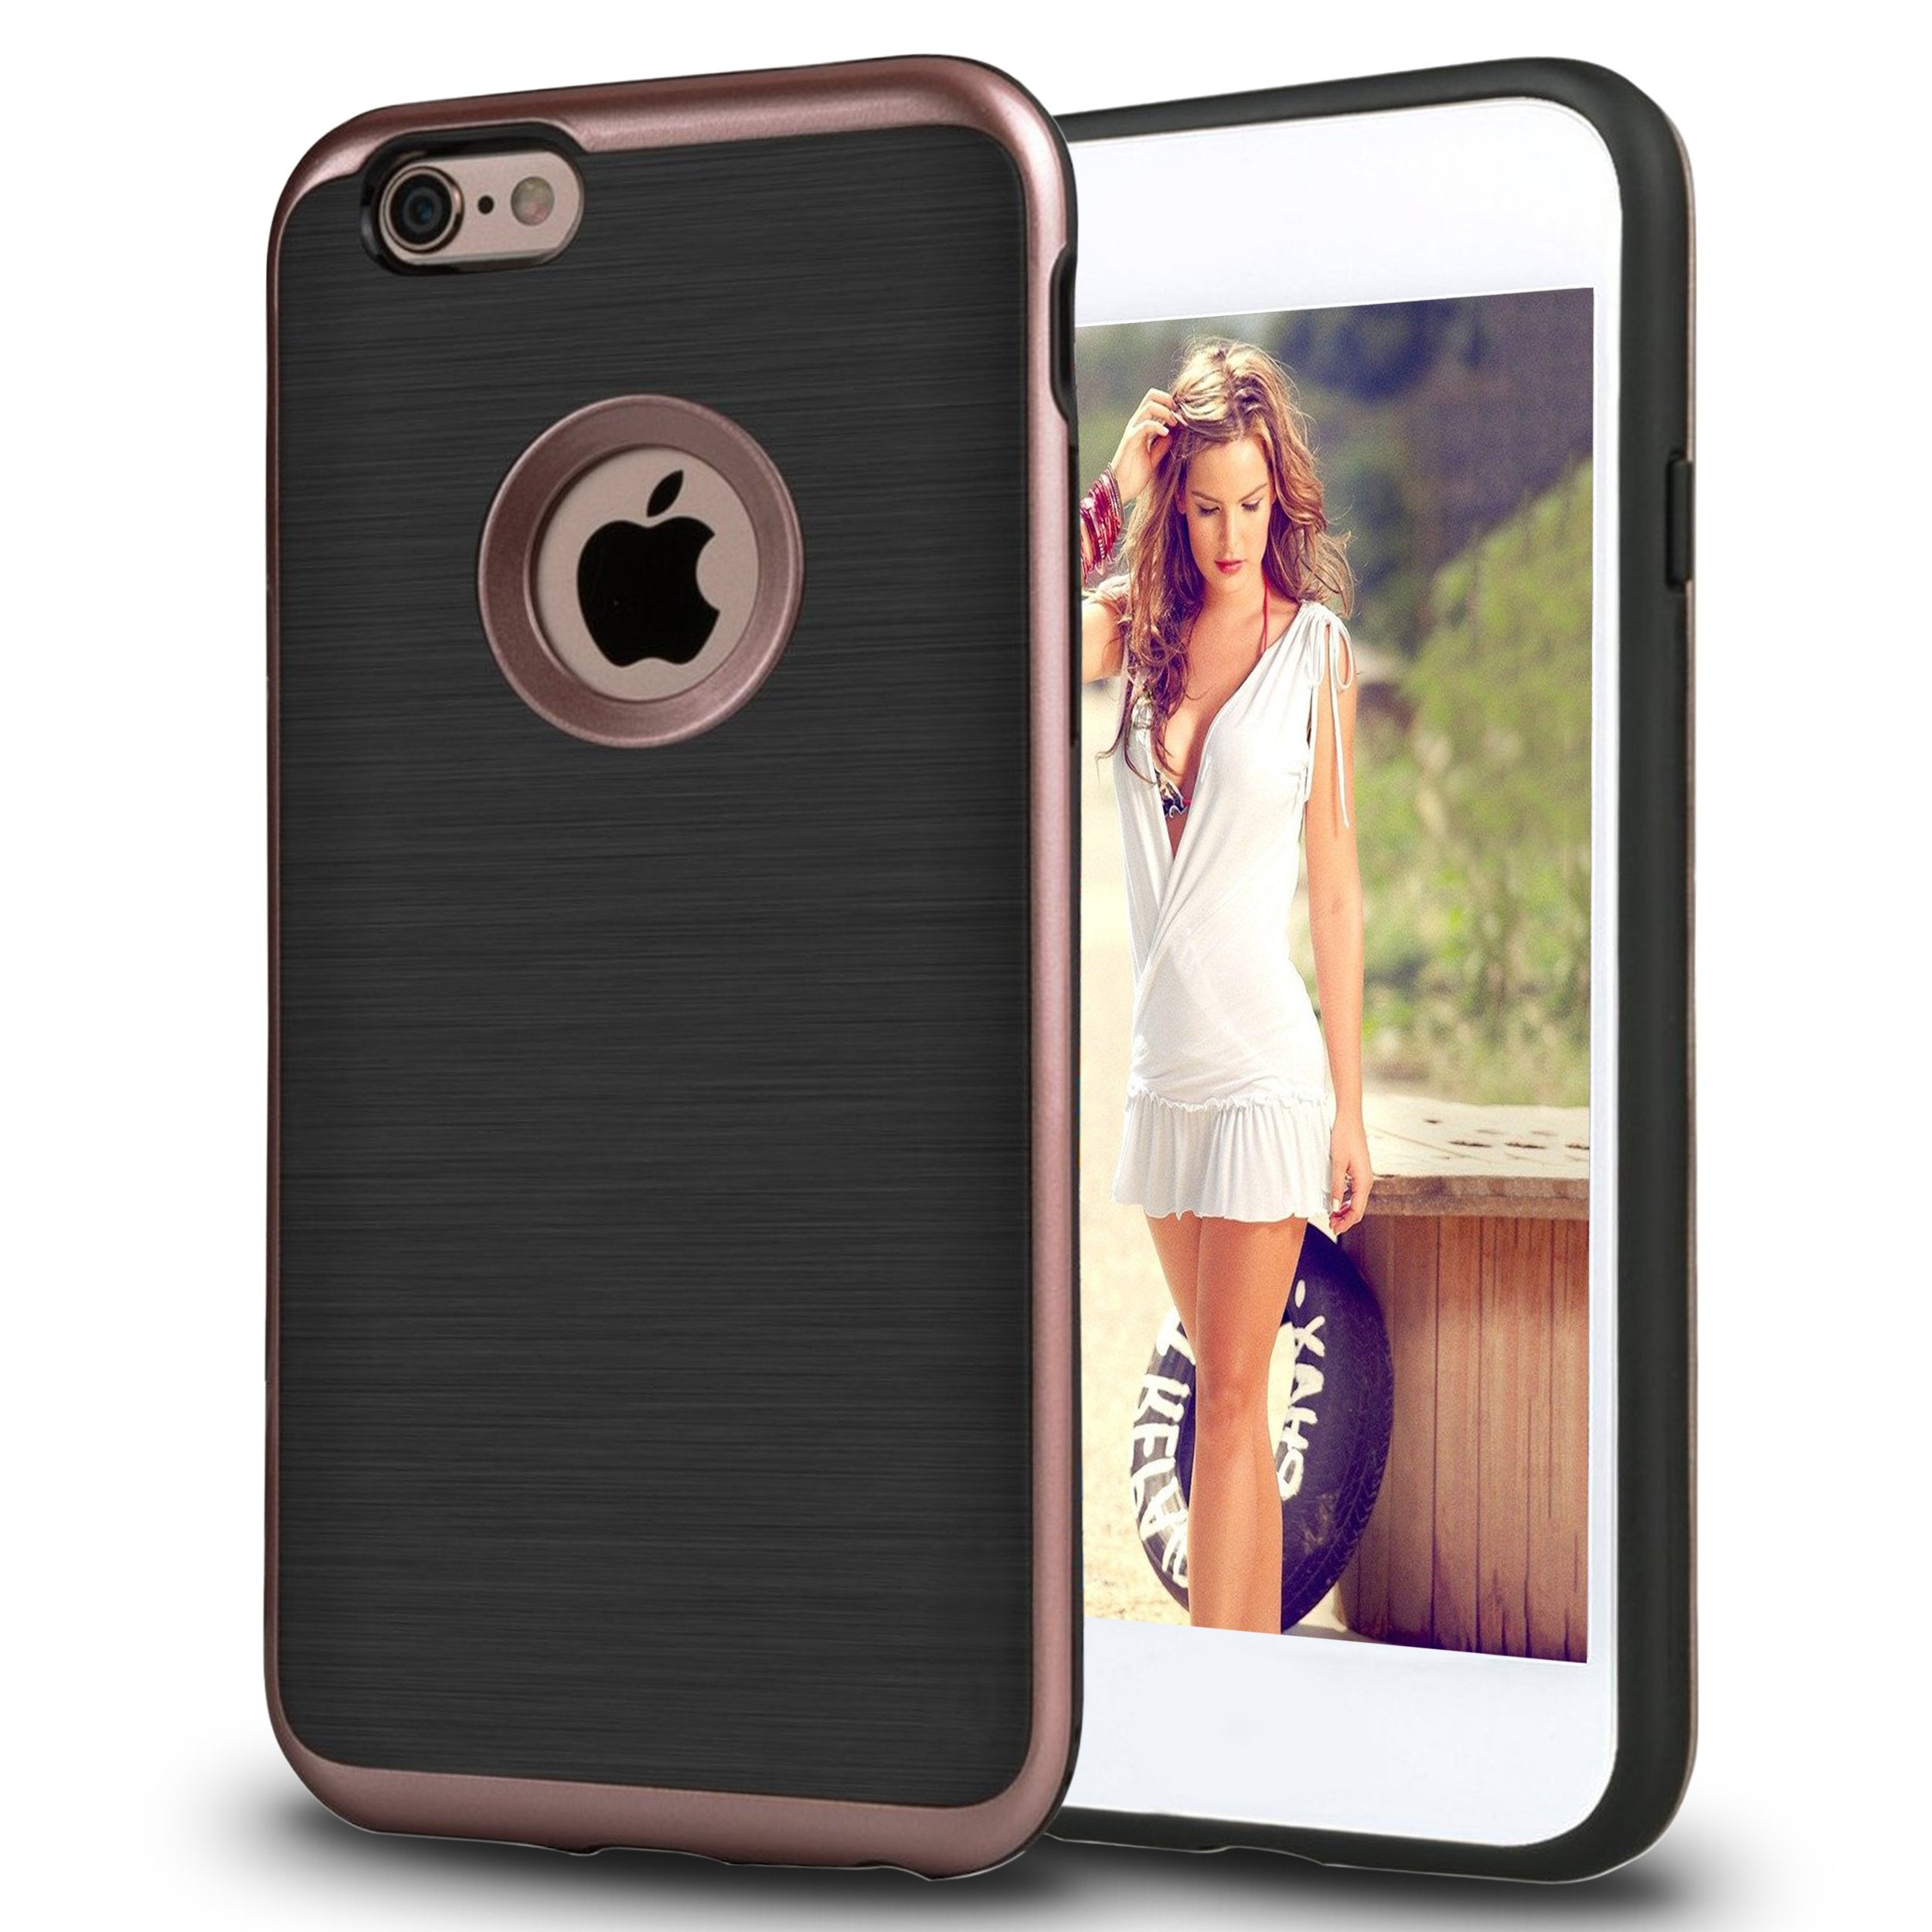 Ailun Phone Case for iPhone 6s iPhone 6 Reinforced Soft Interior TPU Bumper Solid PC Frame Shock Absorption Skid Proof Anti Scratch Fingerprint Oil Stain Back Cover Rose Gold